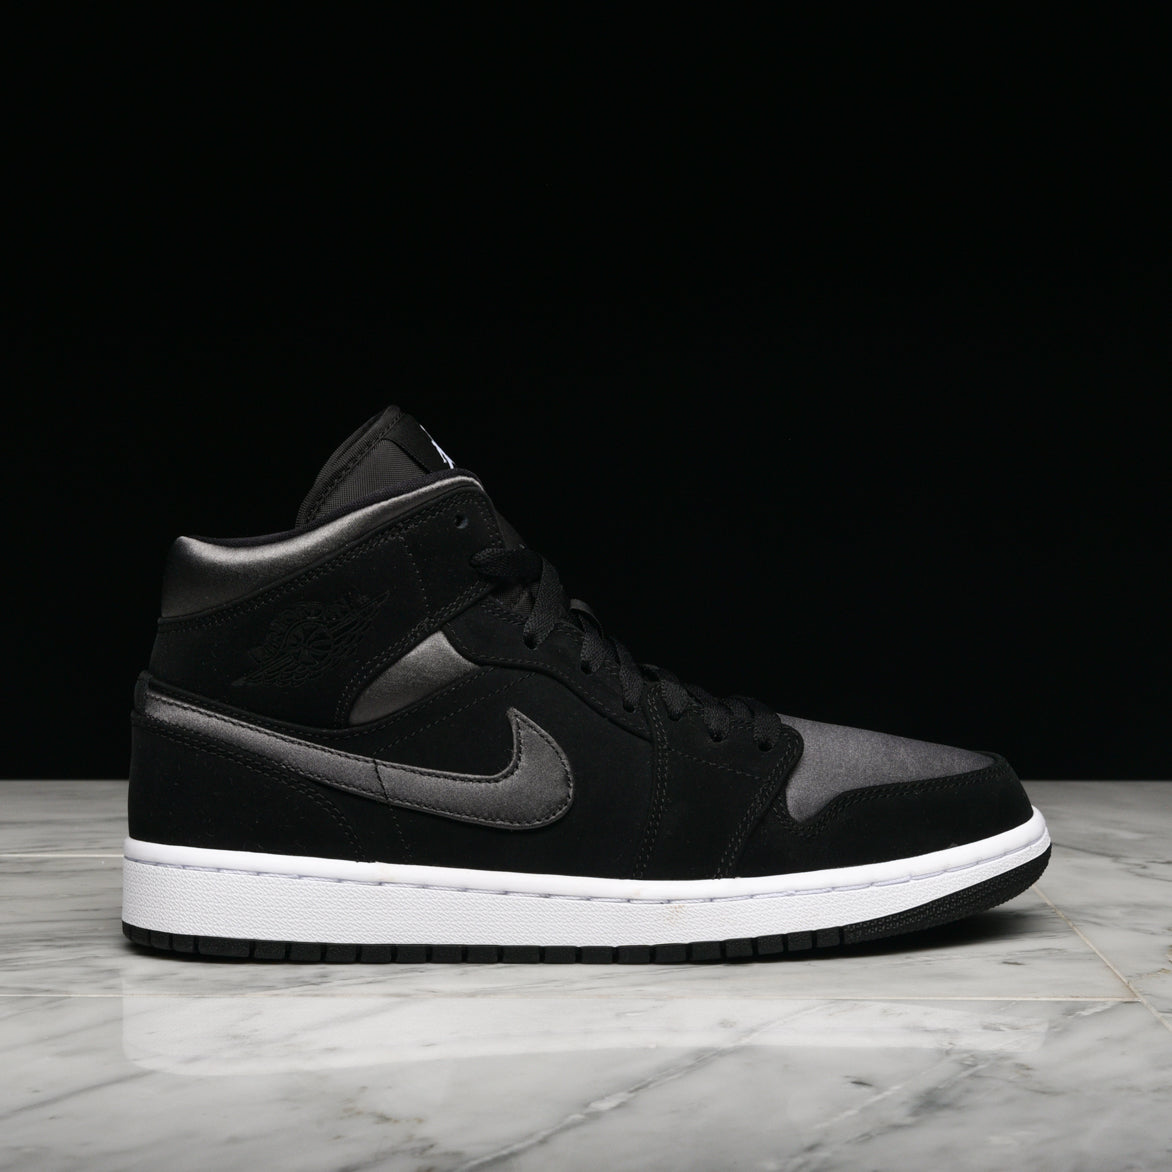 hot sale online e52fc e6596 AIR JORDAN 1 MID SE - BLACK / ANTHRACITE